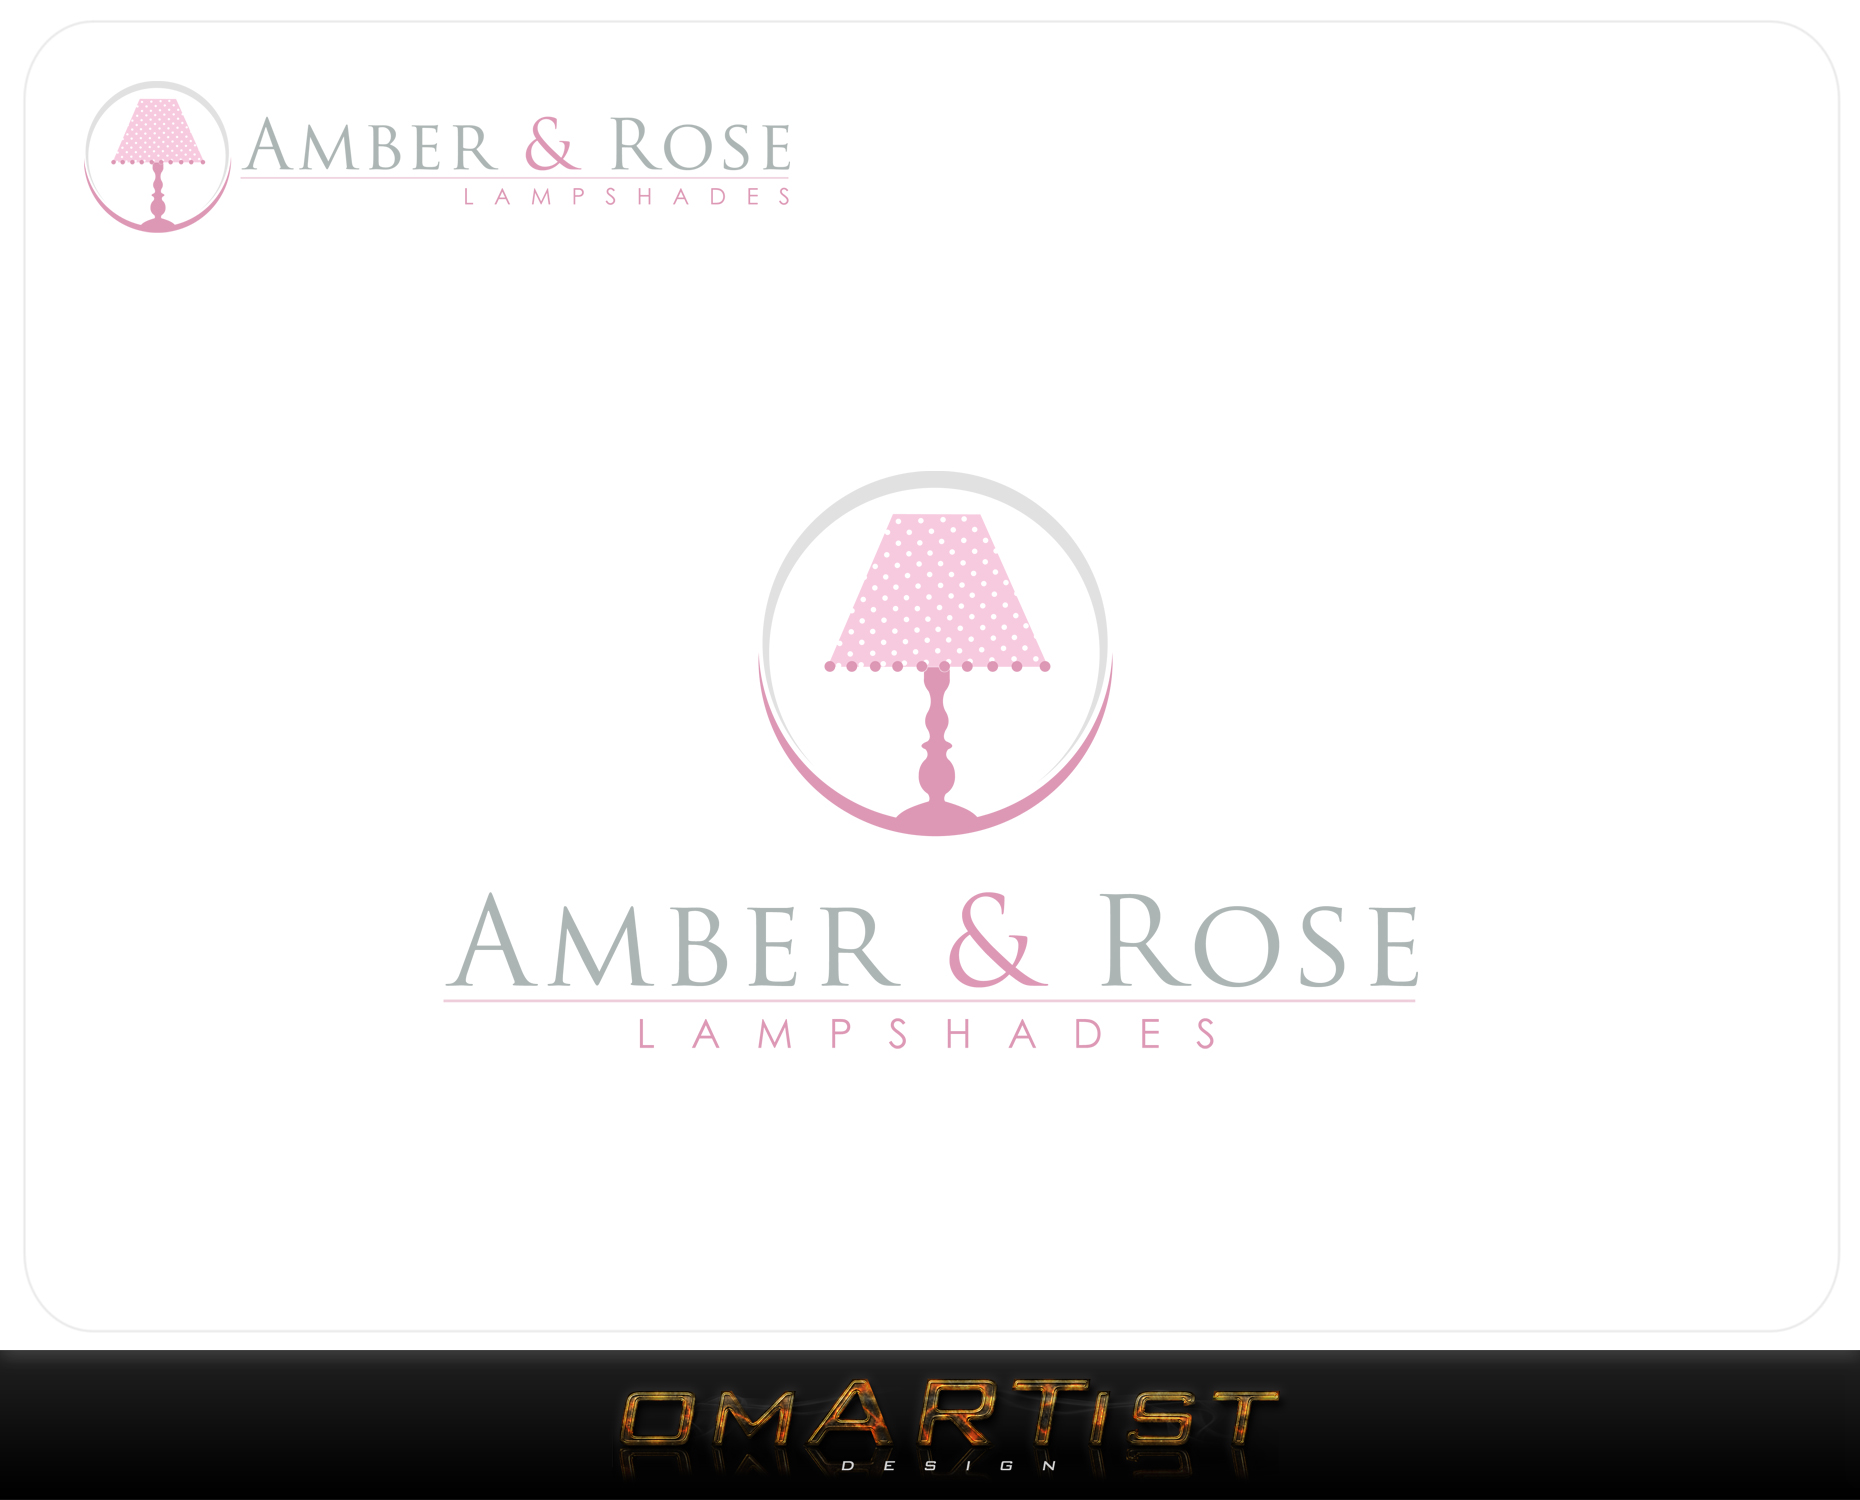 Logo Design by omARTist - Entry No. 77 in the Logo Design Contest Creative Logo Design for Amber & Rose.